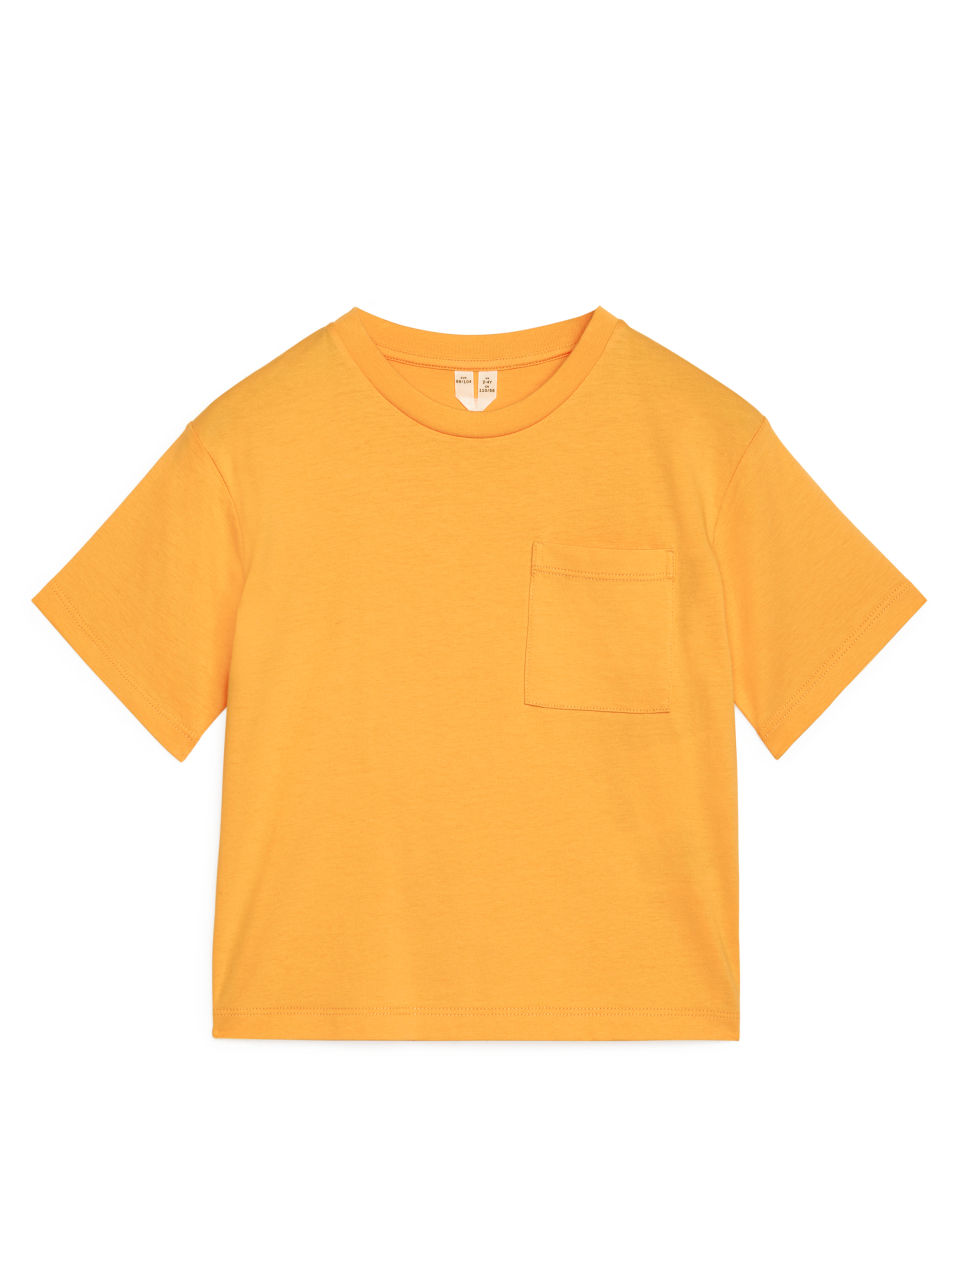 Loose Fit T-Shirt - Yellow